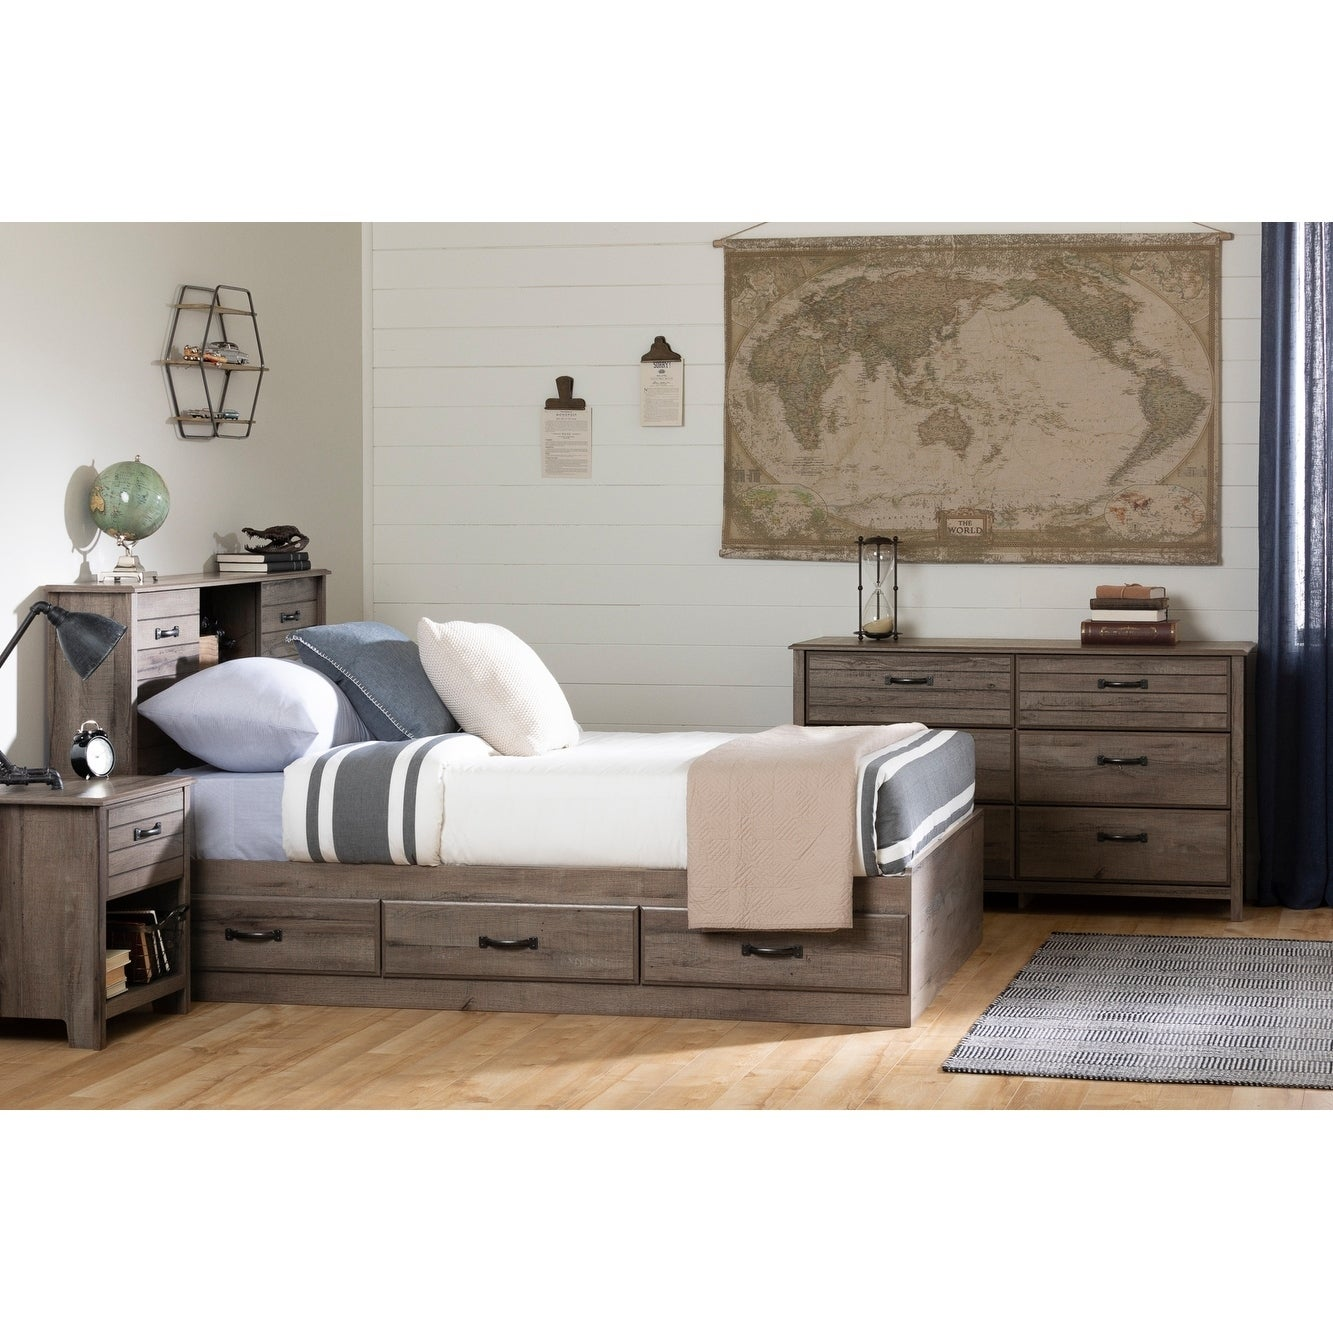 South Shore Ulysses Bookcase Headboard With Sliding Doors